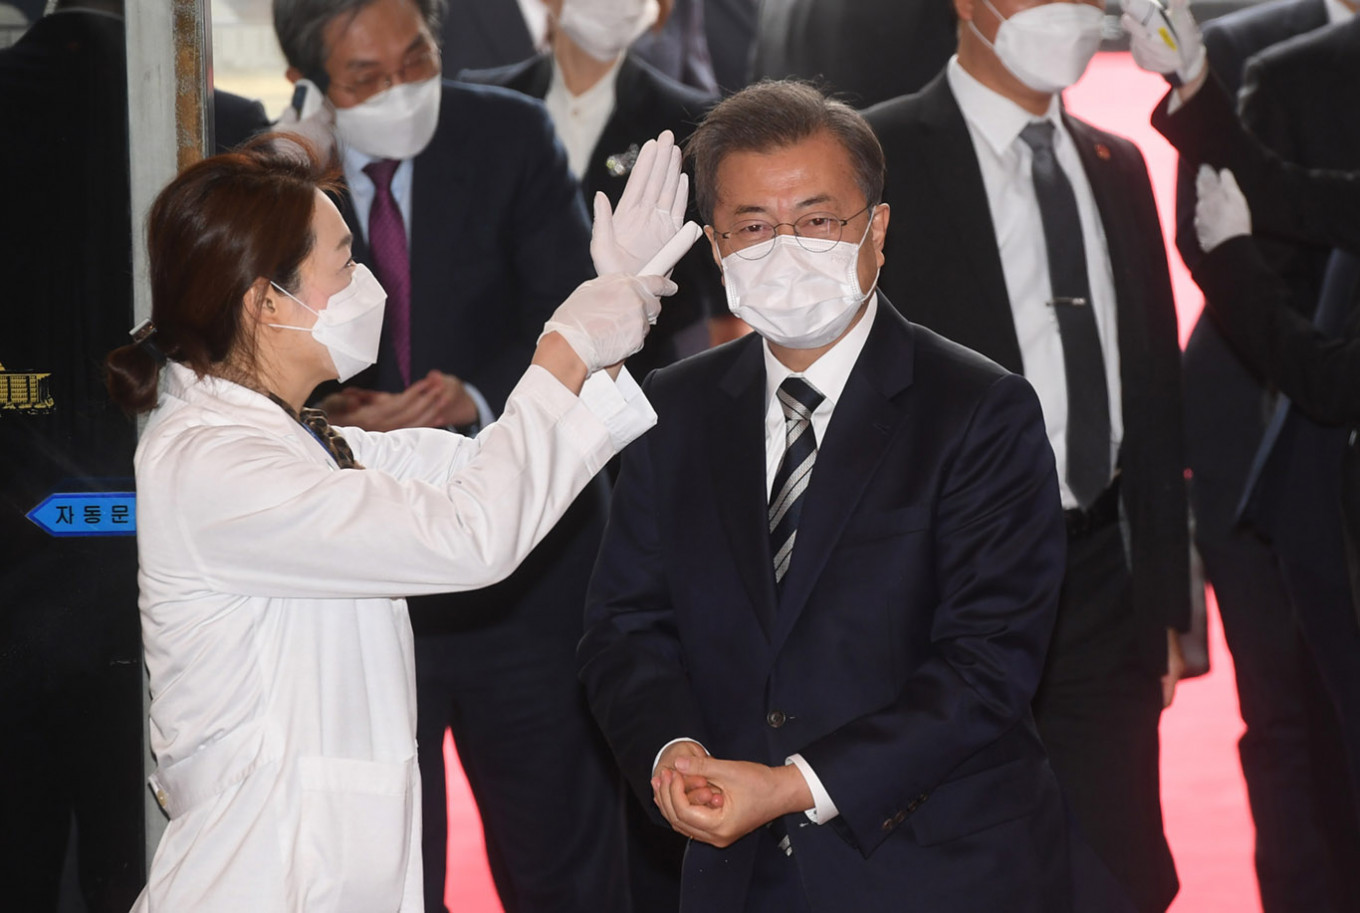 South Korea reports 376 more coronavirus cases, total 3,526